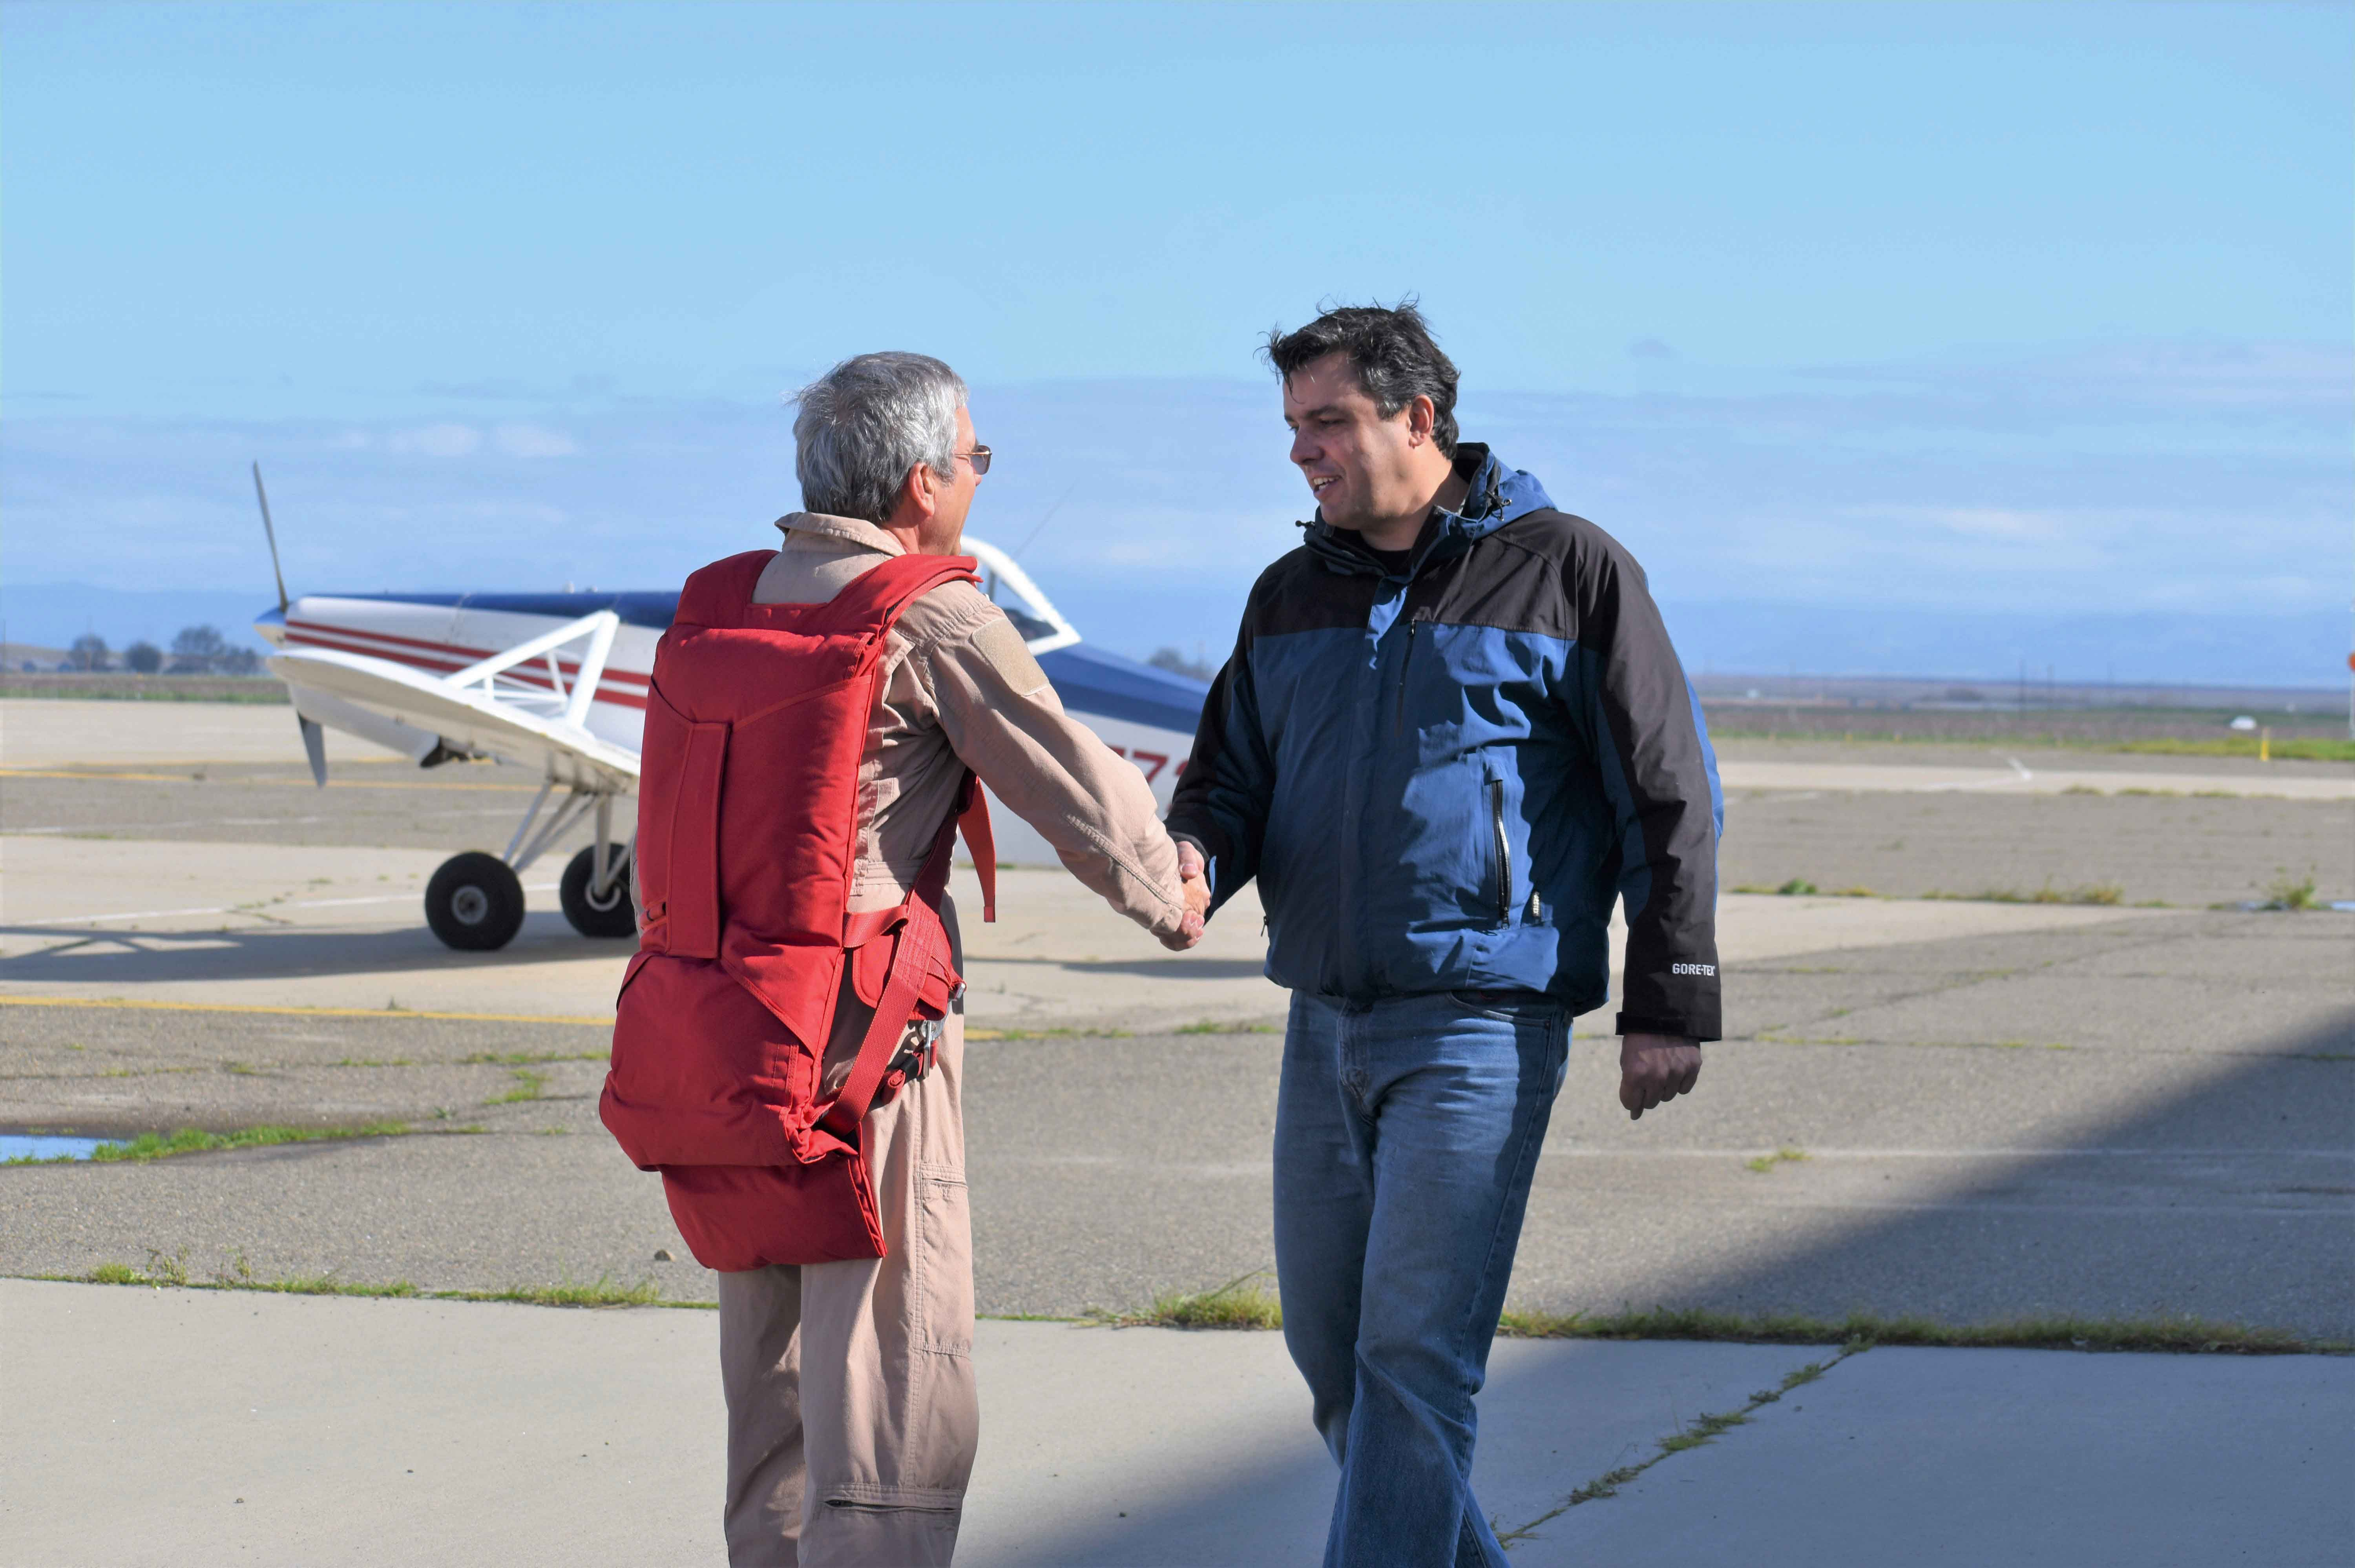 Record-breaking pilot Jim Payne shakes hands with Aerospace Engineering Professor Paulo Iscold at the Castle Air Force Base in Merced. Payne flew a glider created by Iscold and his students.